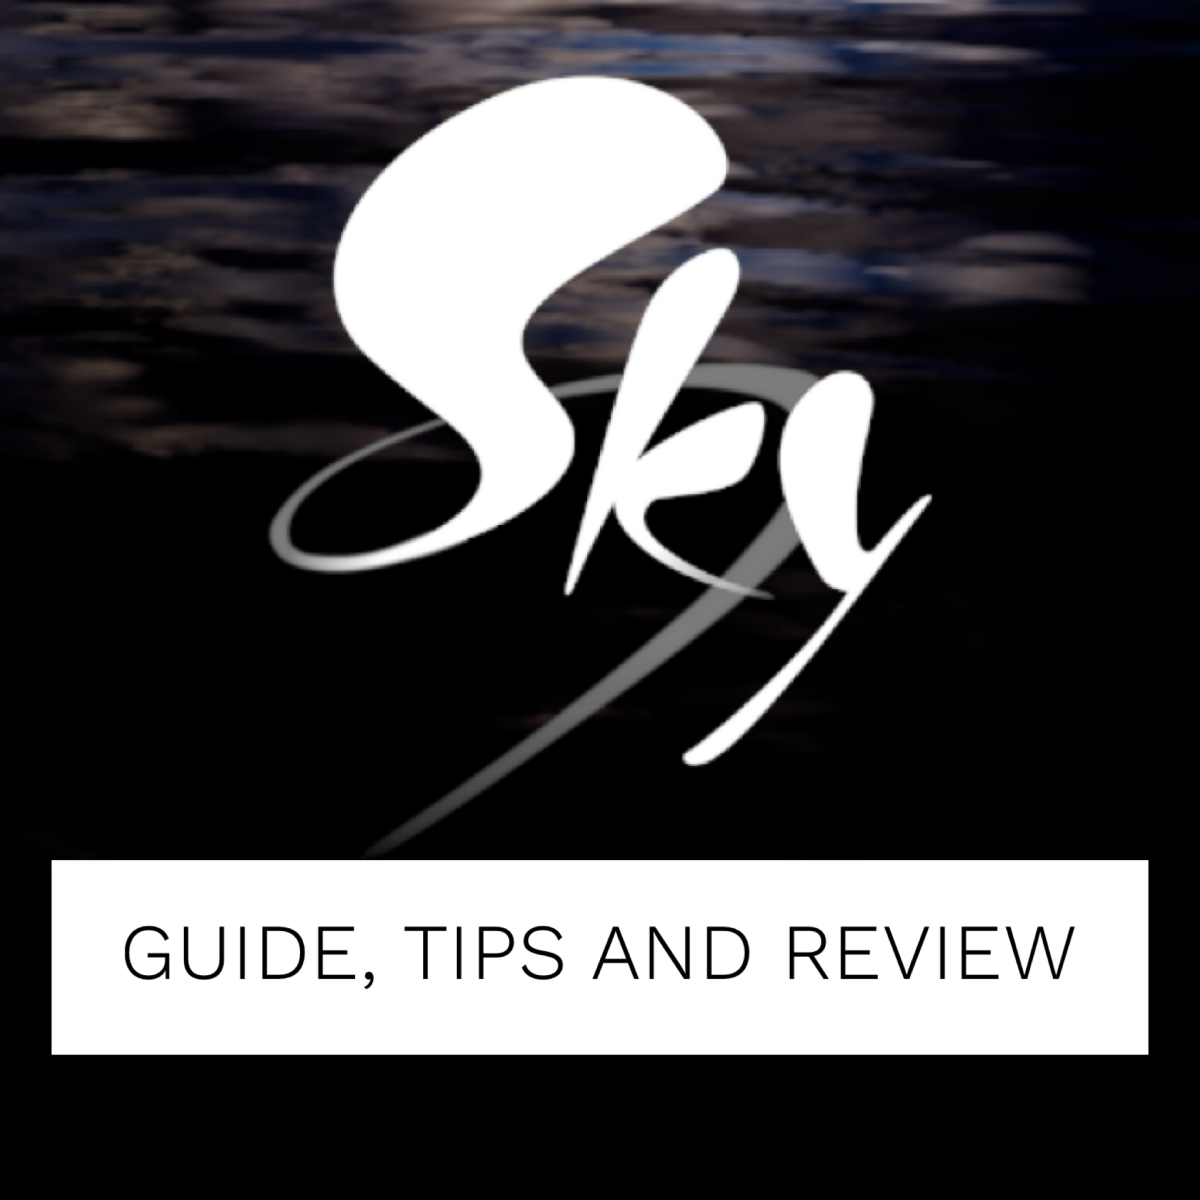 sky-children-of-light-guide-tips-and-review